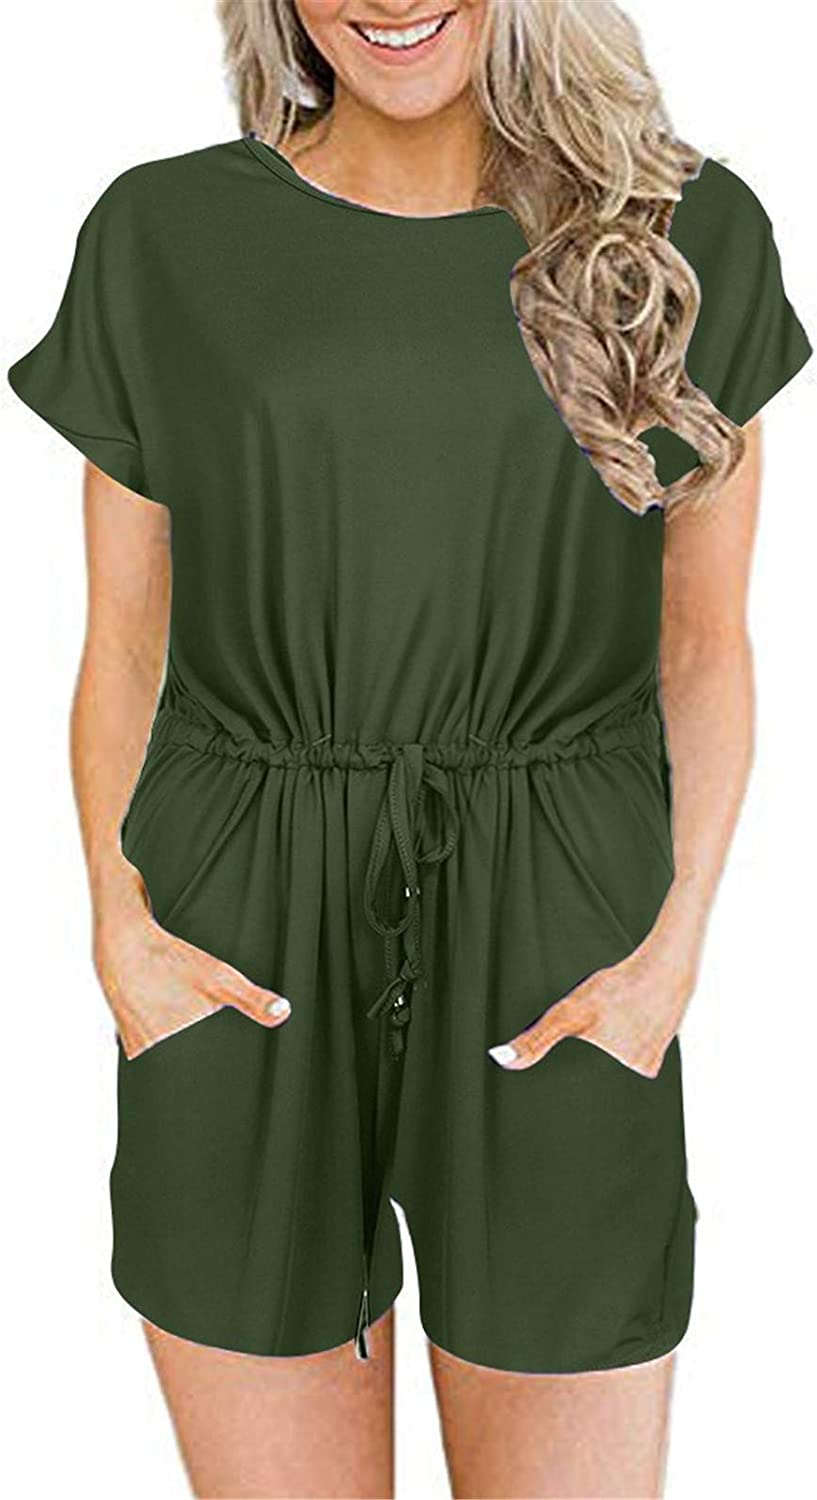 Wadonerful Plus Size Jumpsuits for Women Casual Summer Sleeveles